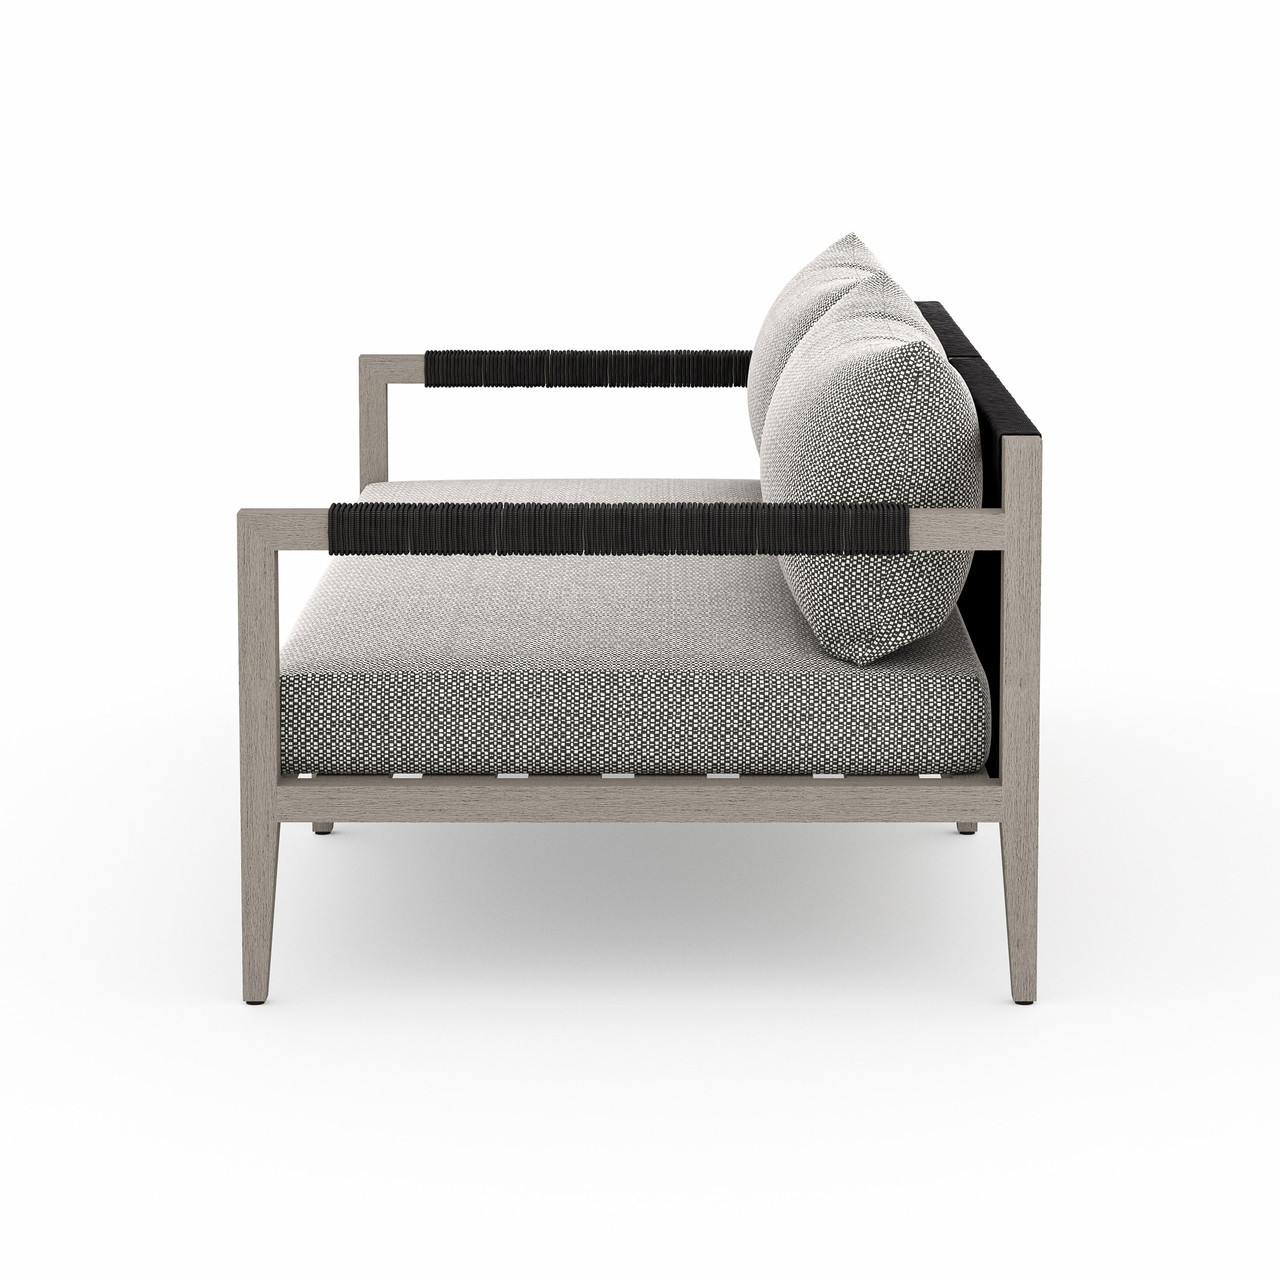 Silhouette Outdoor Sofa - Weathered Grey